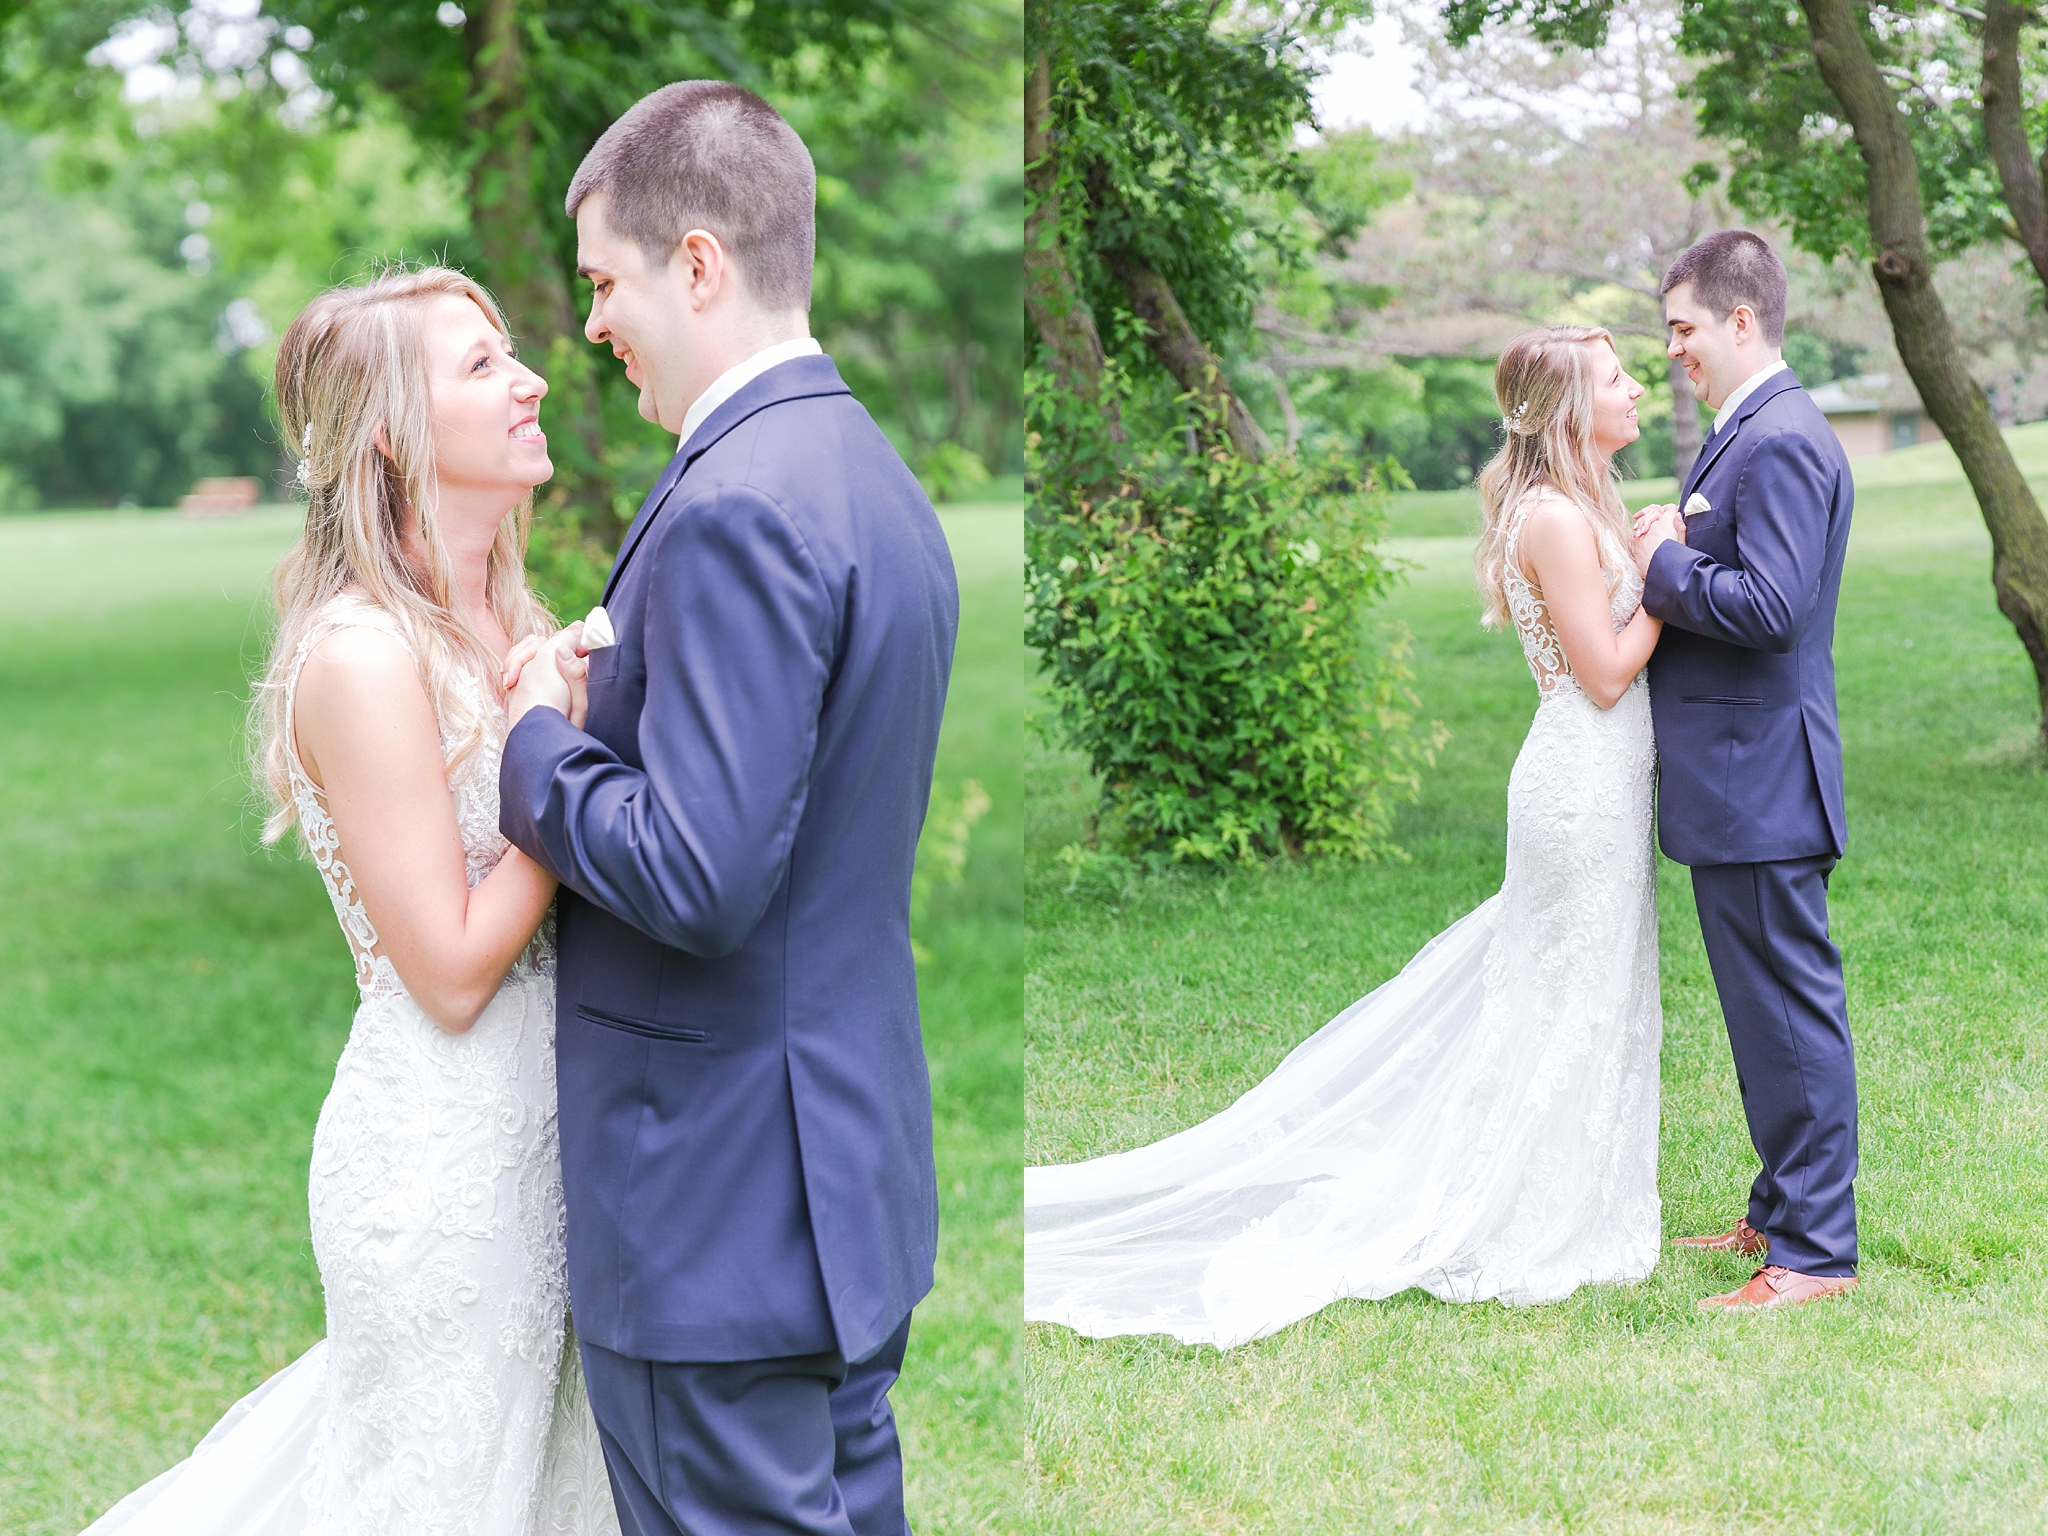 candid-romantic-wedding-photos-at-the-h-hotel-in-midland-michigan-by-courtney-carolyn-photography_0049.jpg